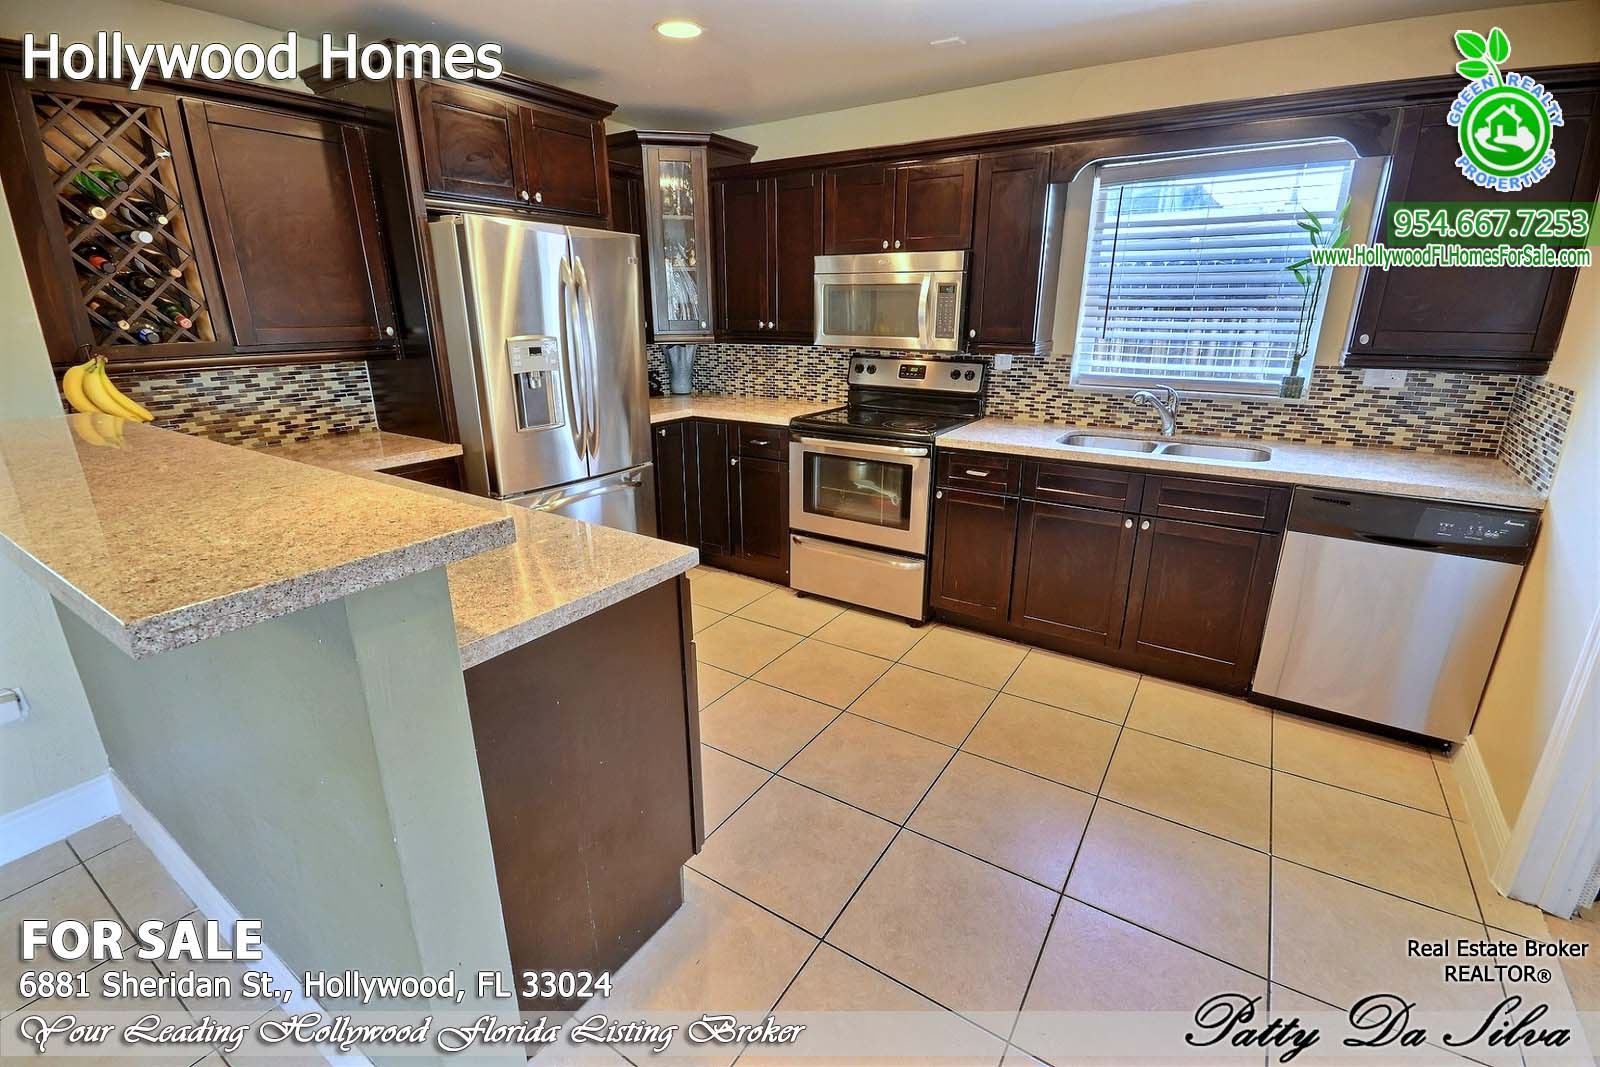 Hollywood FL Homes For Sale (27)